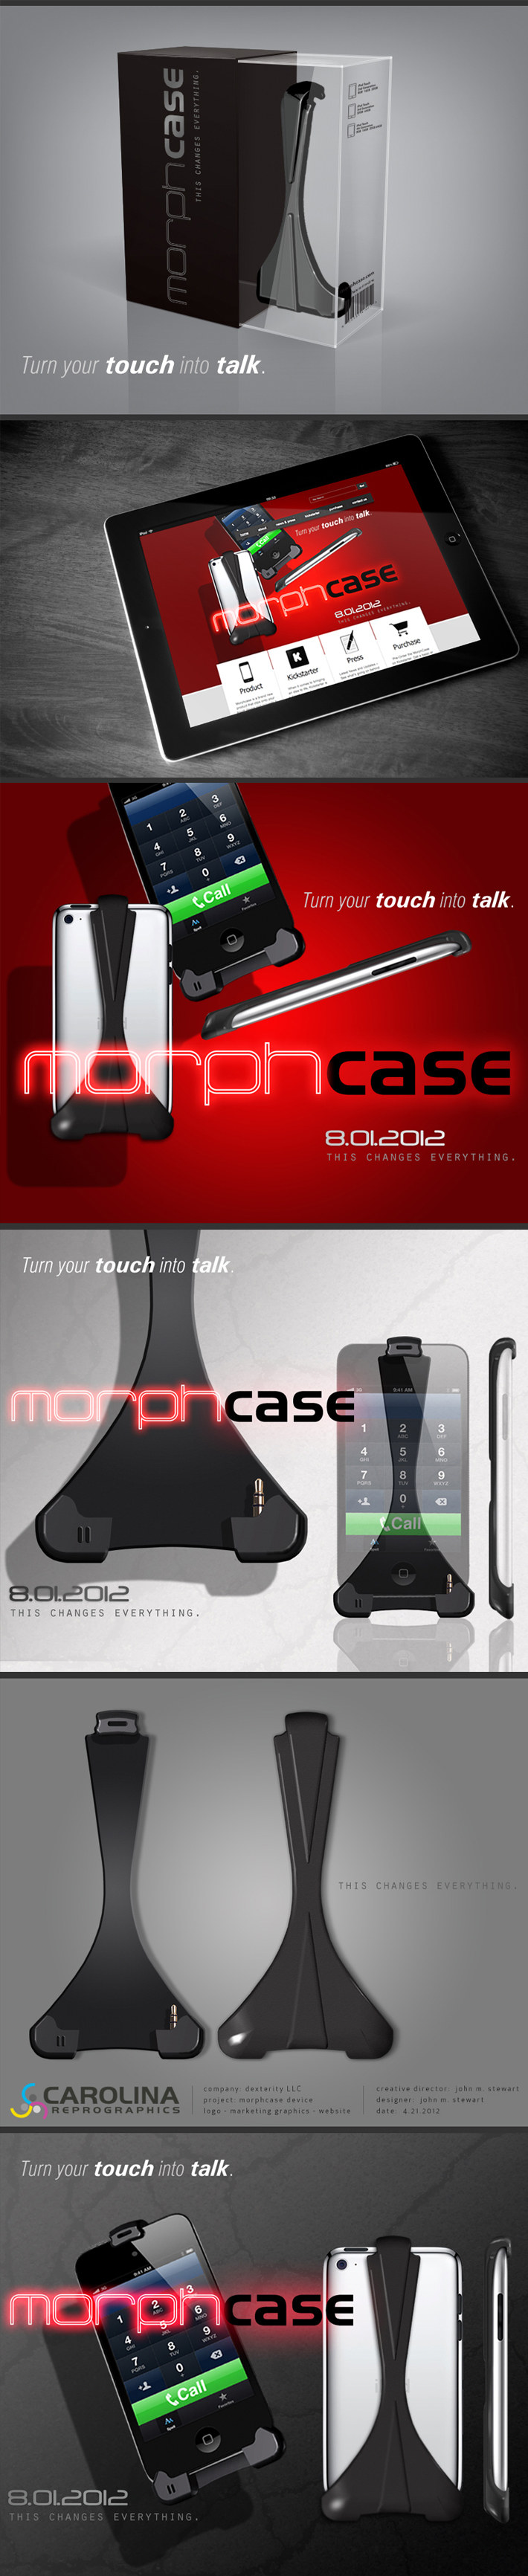 morpcase_website-post-graphic